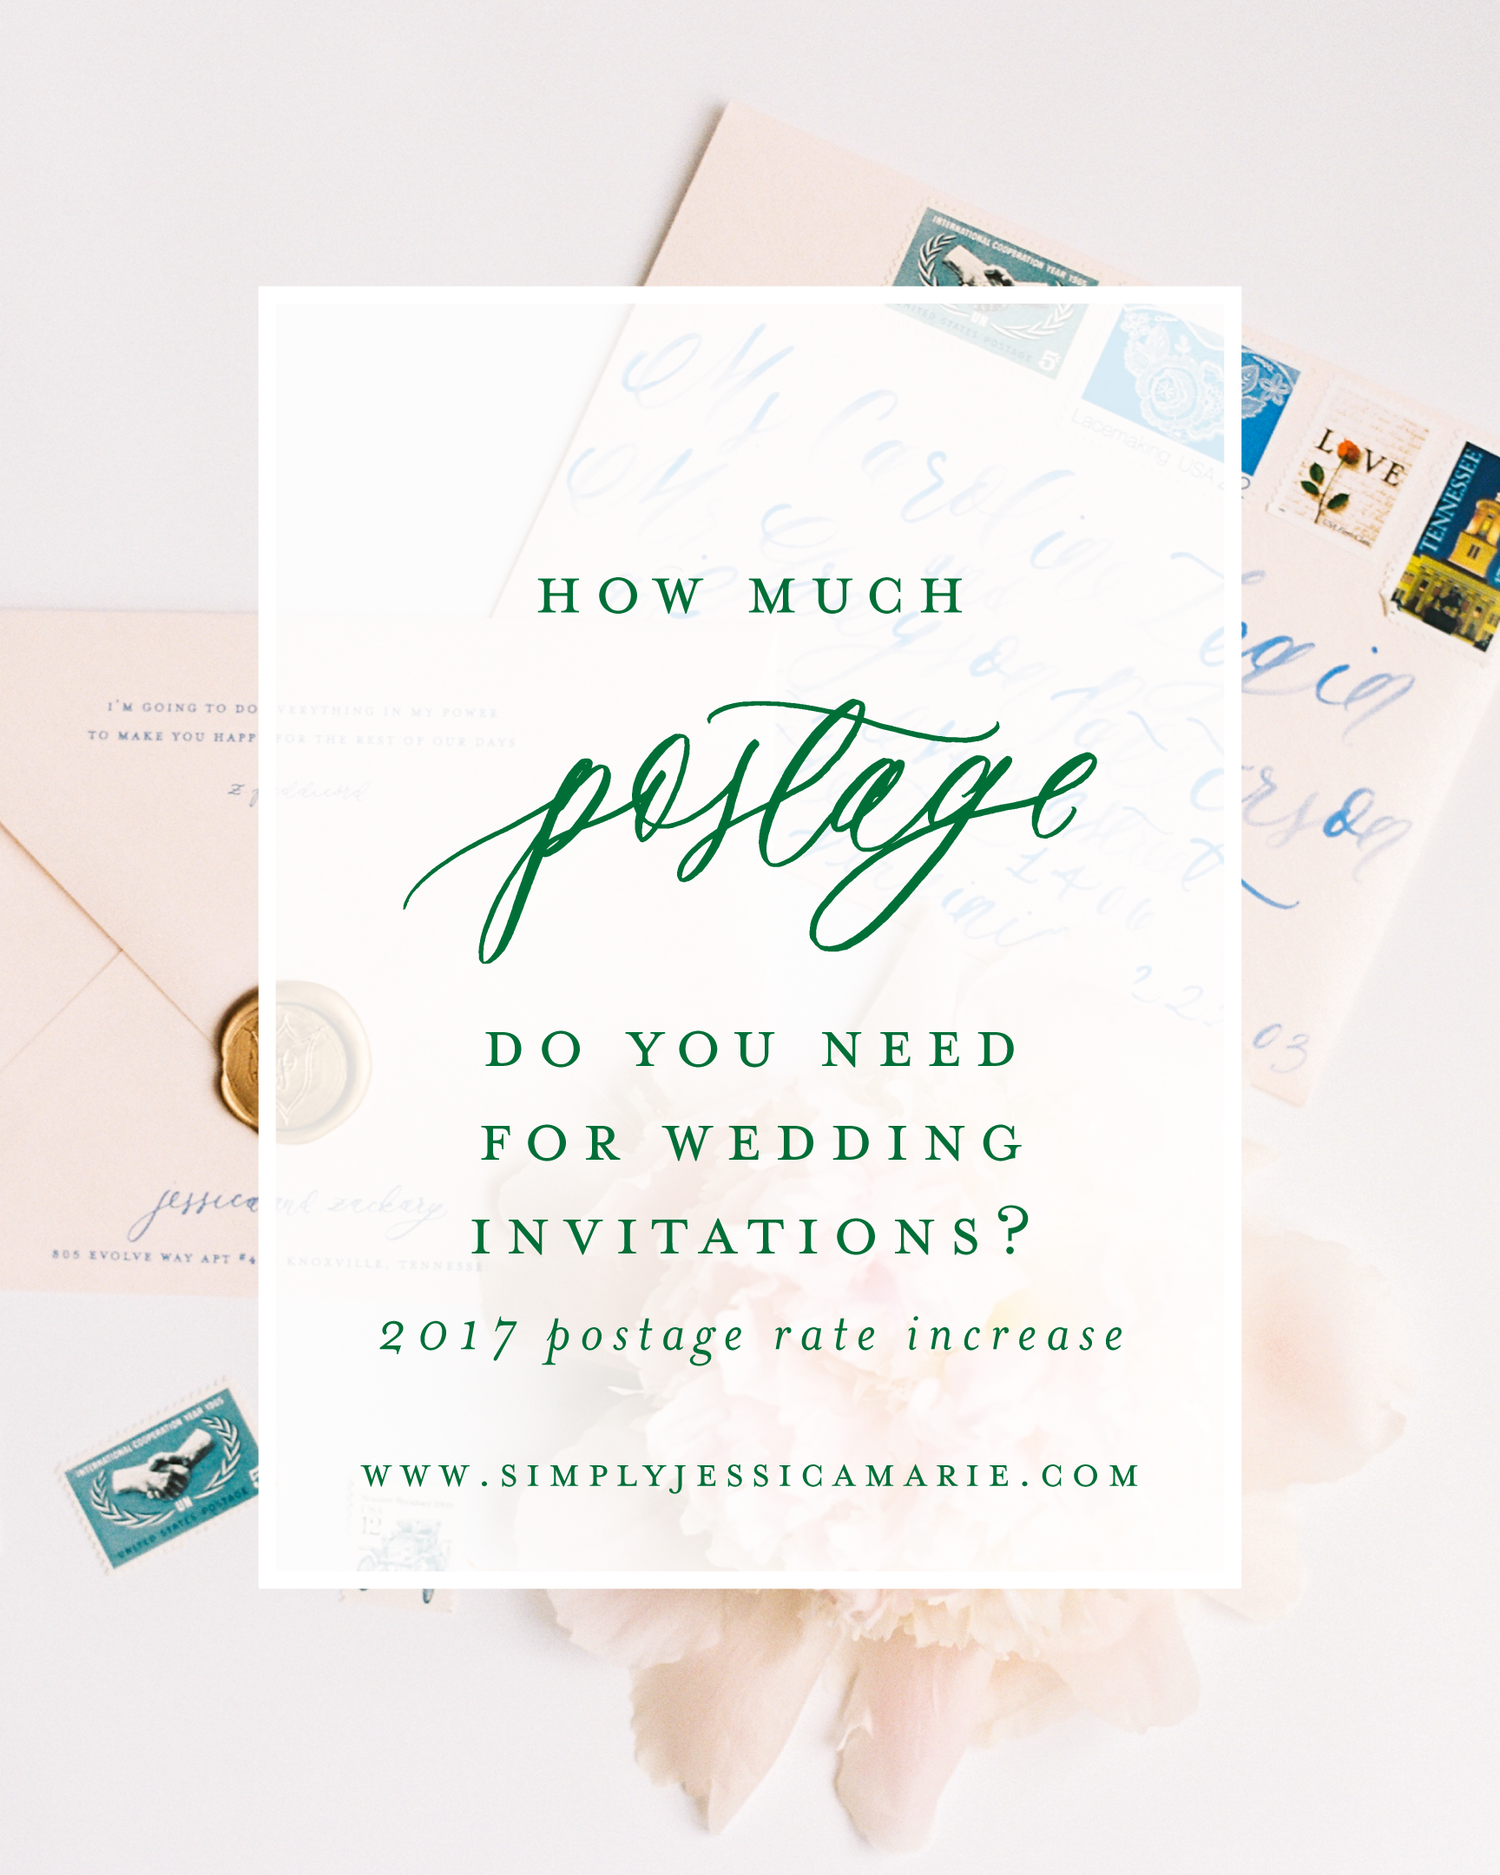 How Much Postage Do You Need For Wedding Invitations 2017 Postage Rate Increase Simply Jessica Marie